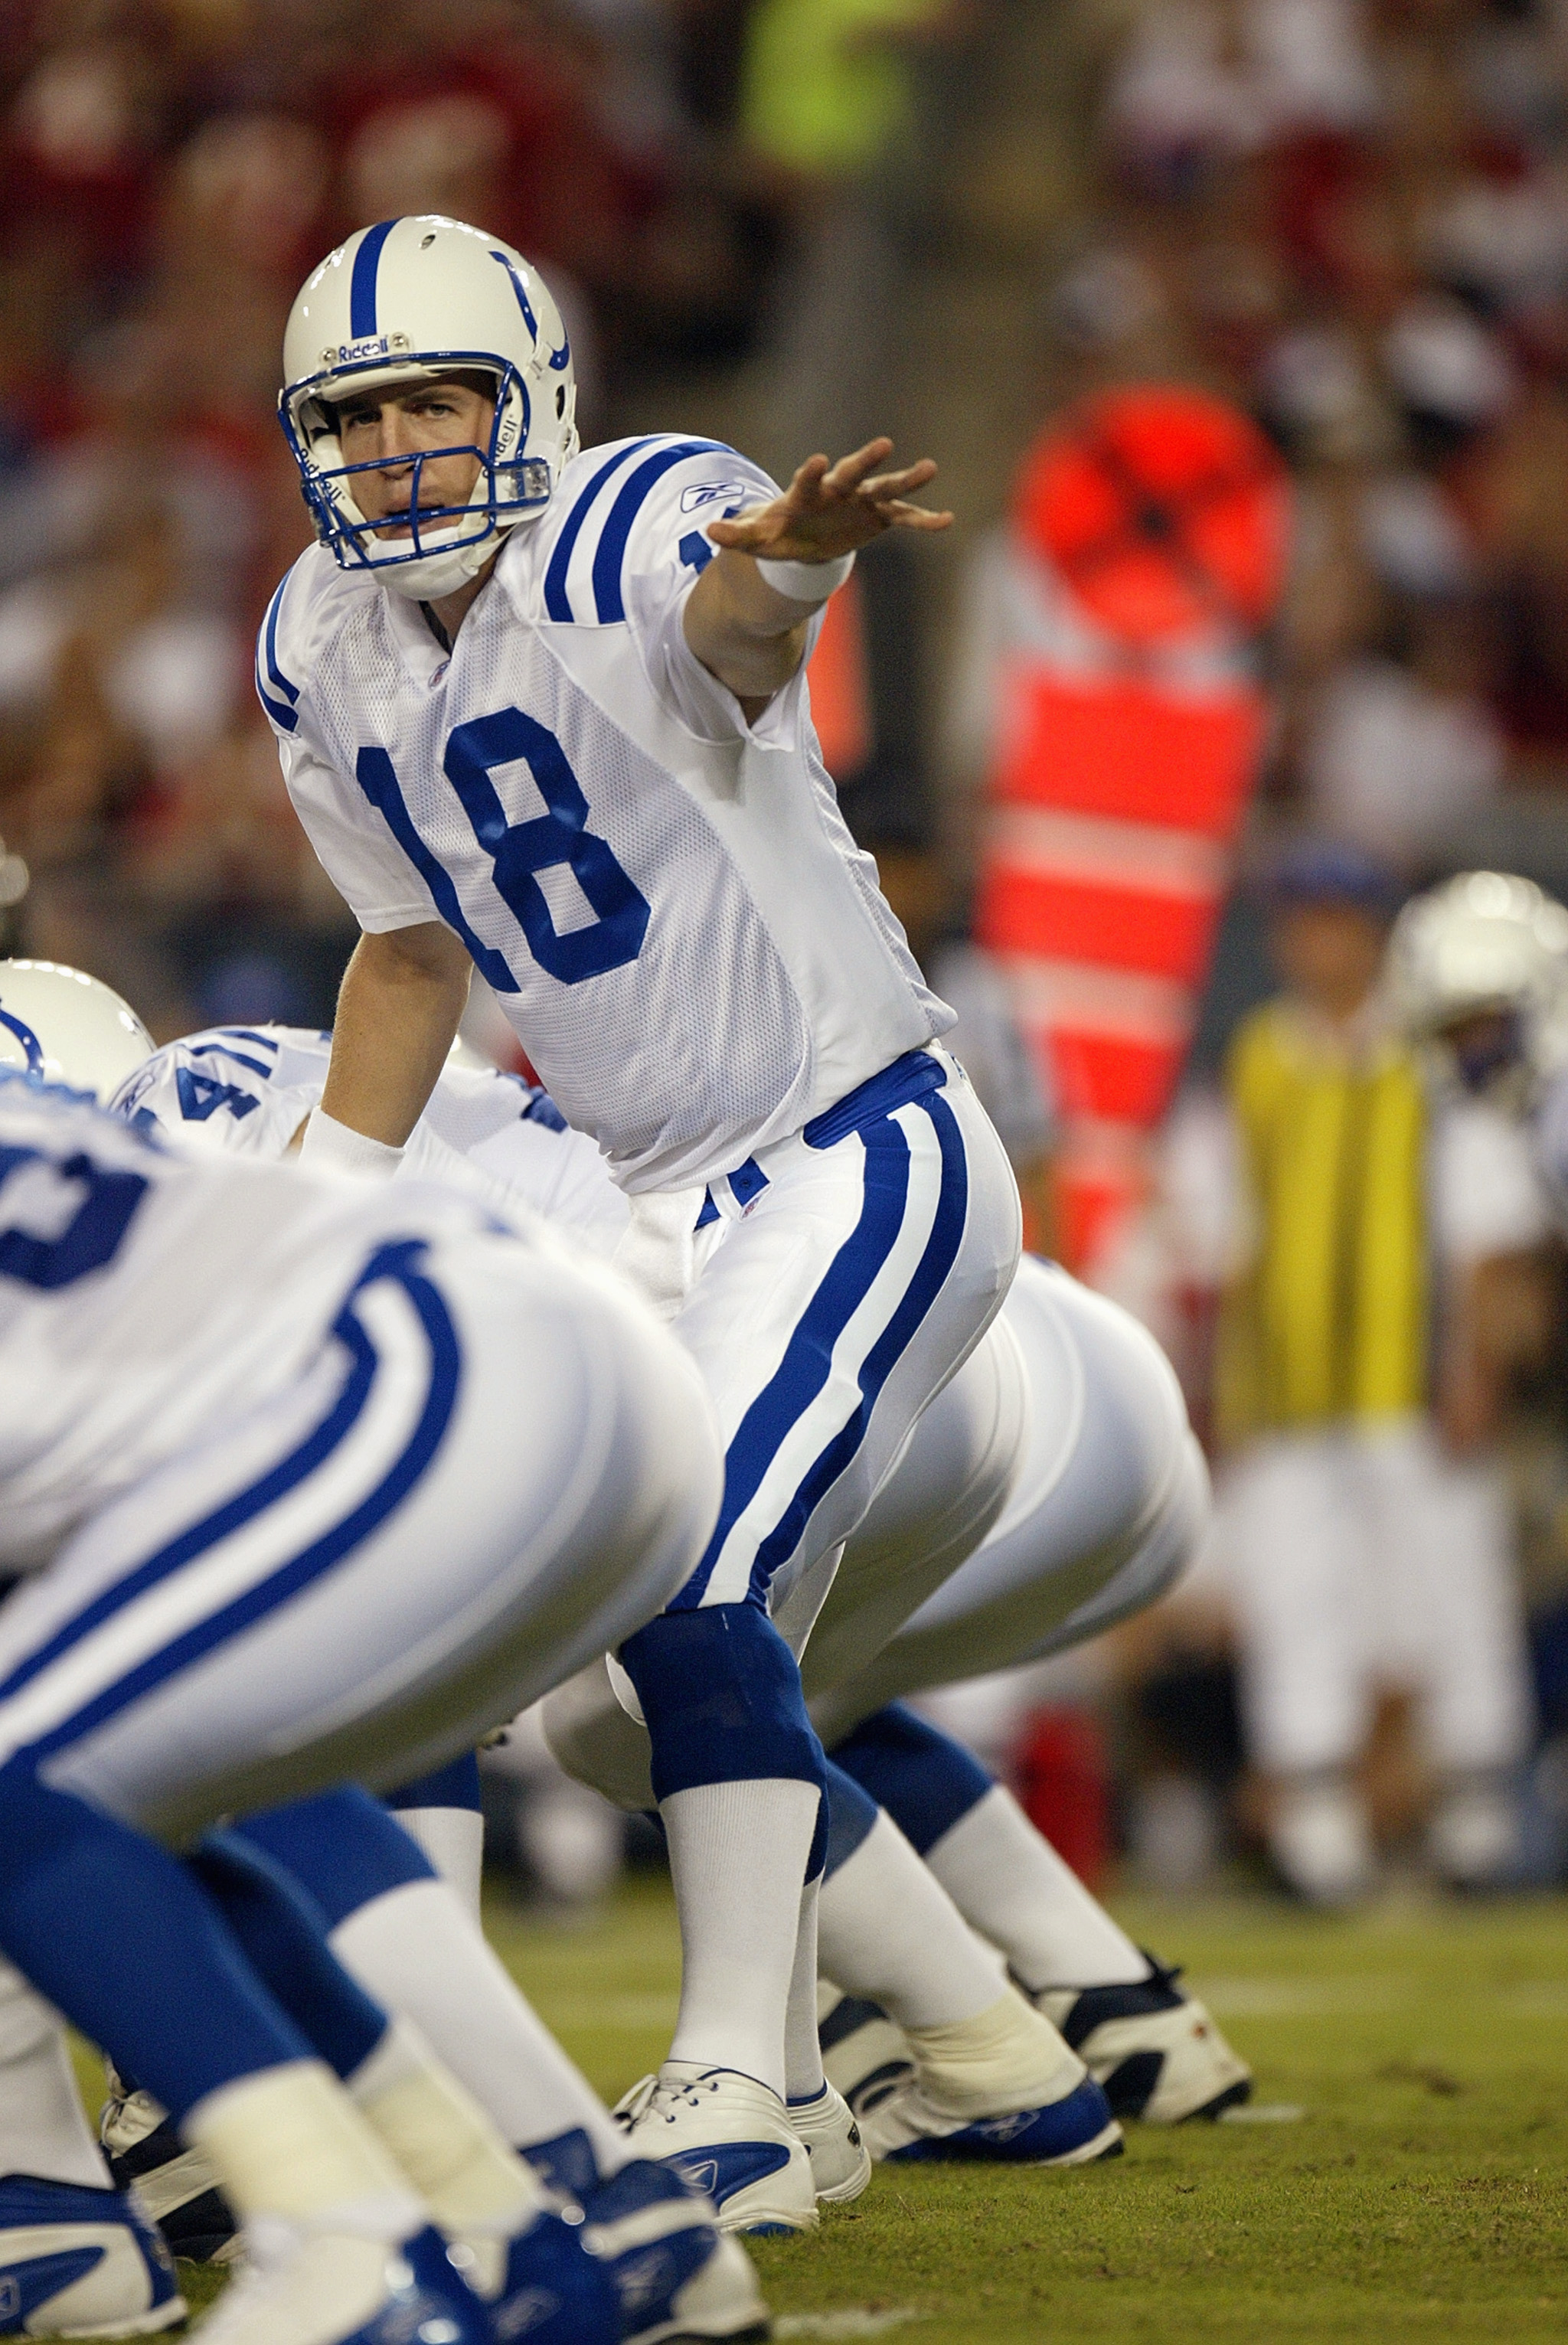 TAMPA, FL - OCTOBER 6:  Quarterback Peyton Manning #18 of the Indianapolis Colts calls an audible against the Tampa Bay Buccaneers on October 6, 2003 at Raymond James Stadium in Tampa, Florida. The Colts defeated the Buccaneers 38-35 in overtime. (Photo b